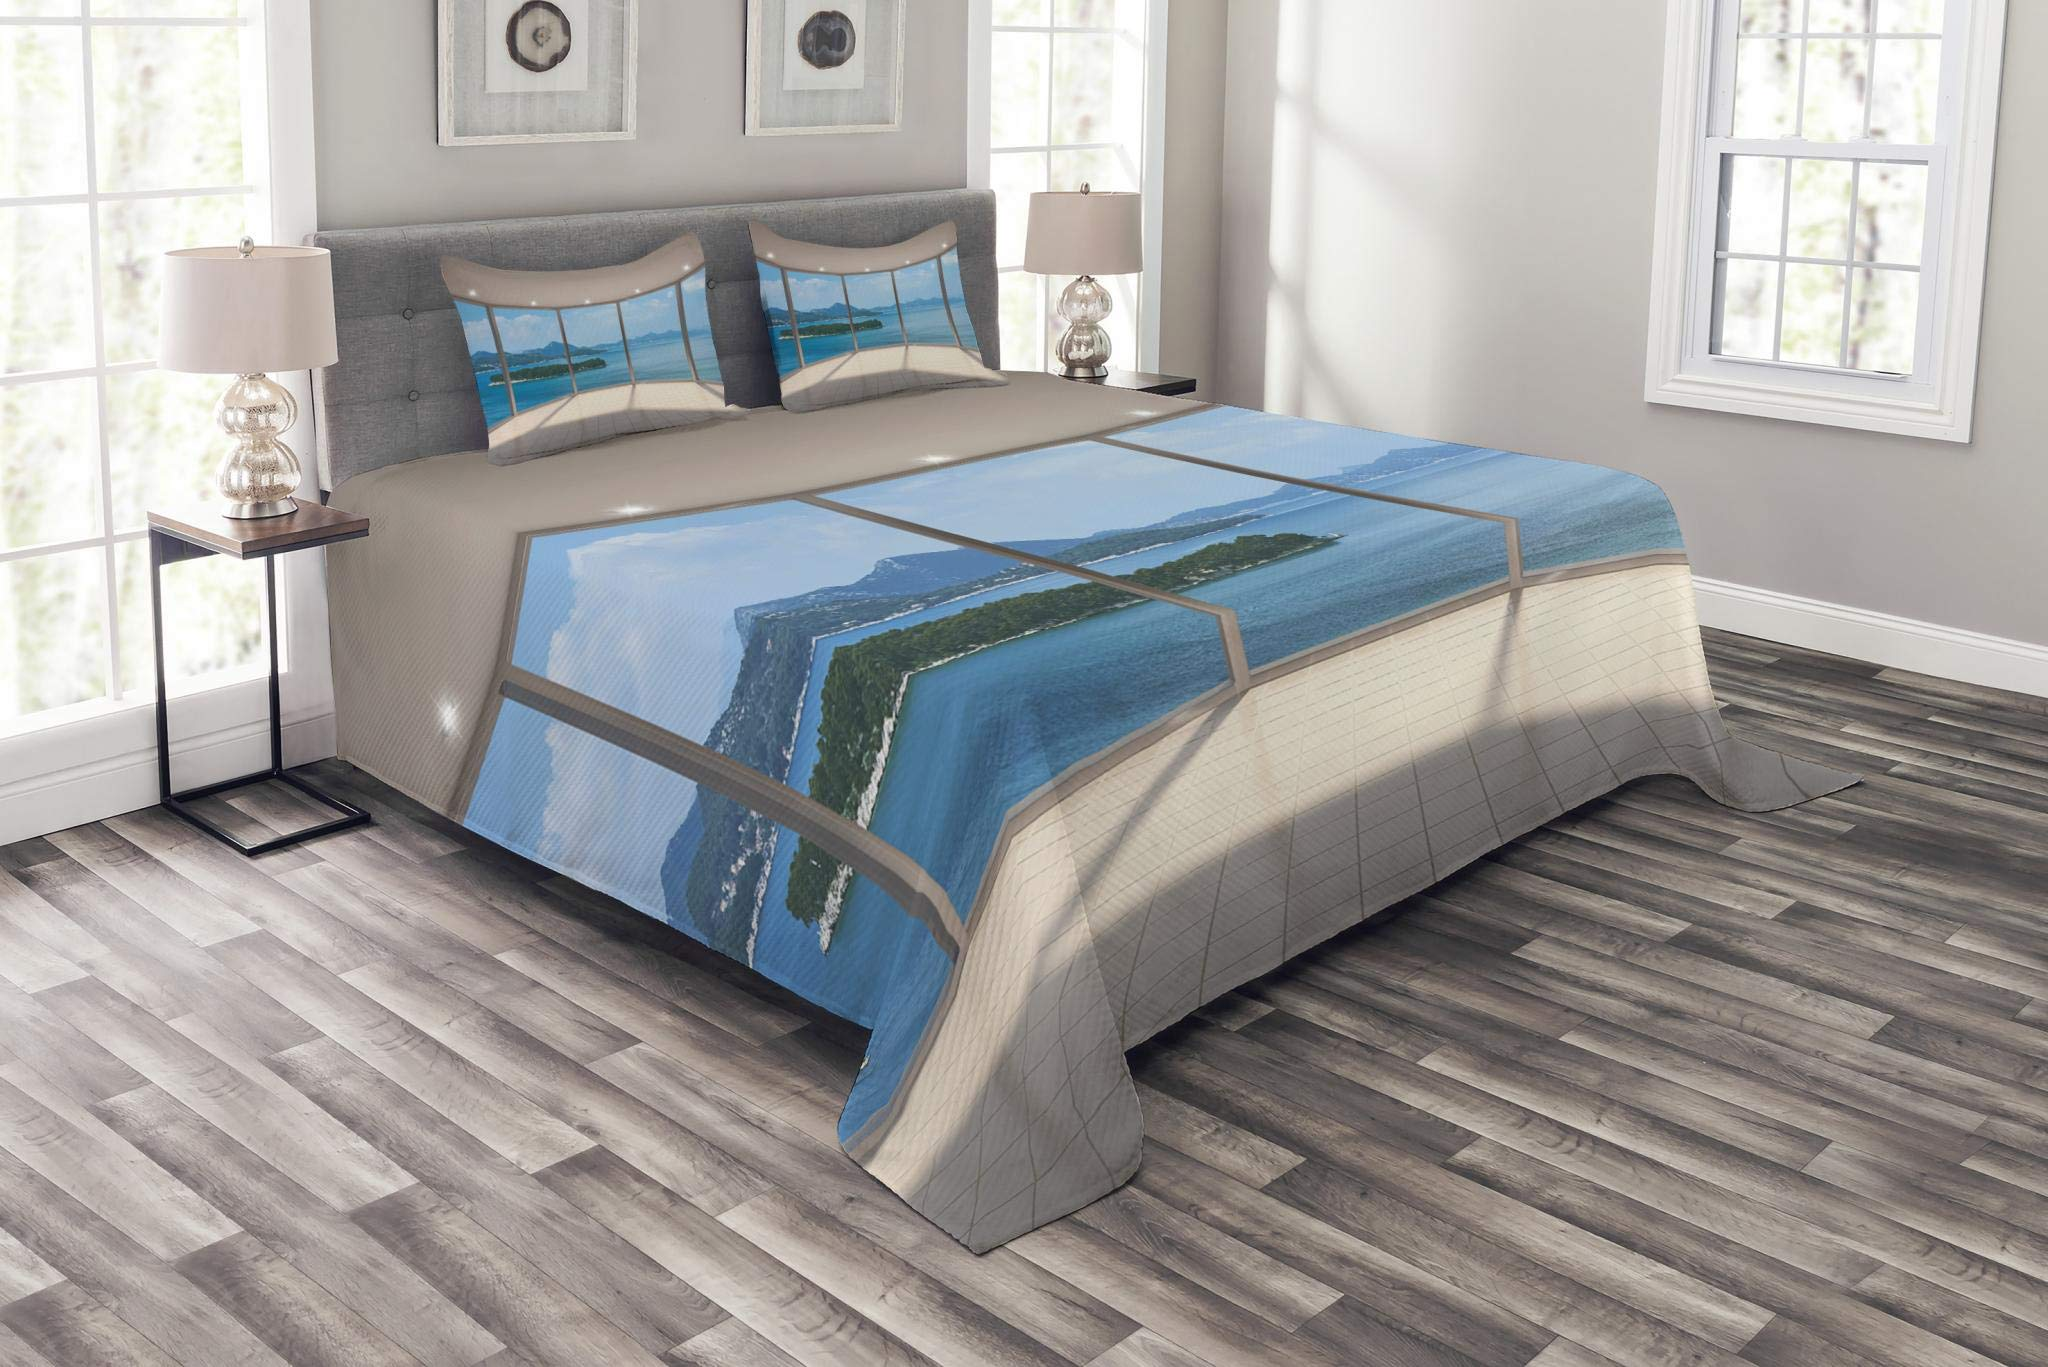 Lunarable Modern Bedspread Set King Size, Empty Modern Lounge Area with Large Window and Sea View Contemporary Architecture, Decorative Quilted 3 Piece Coverlet Set with 2 Pillow Shams, Pearl Blue